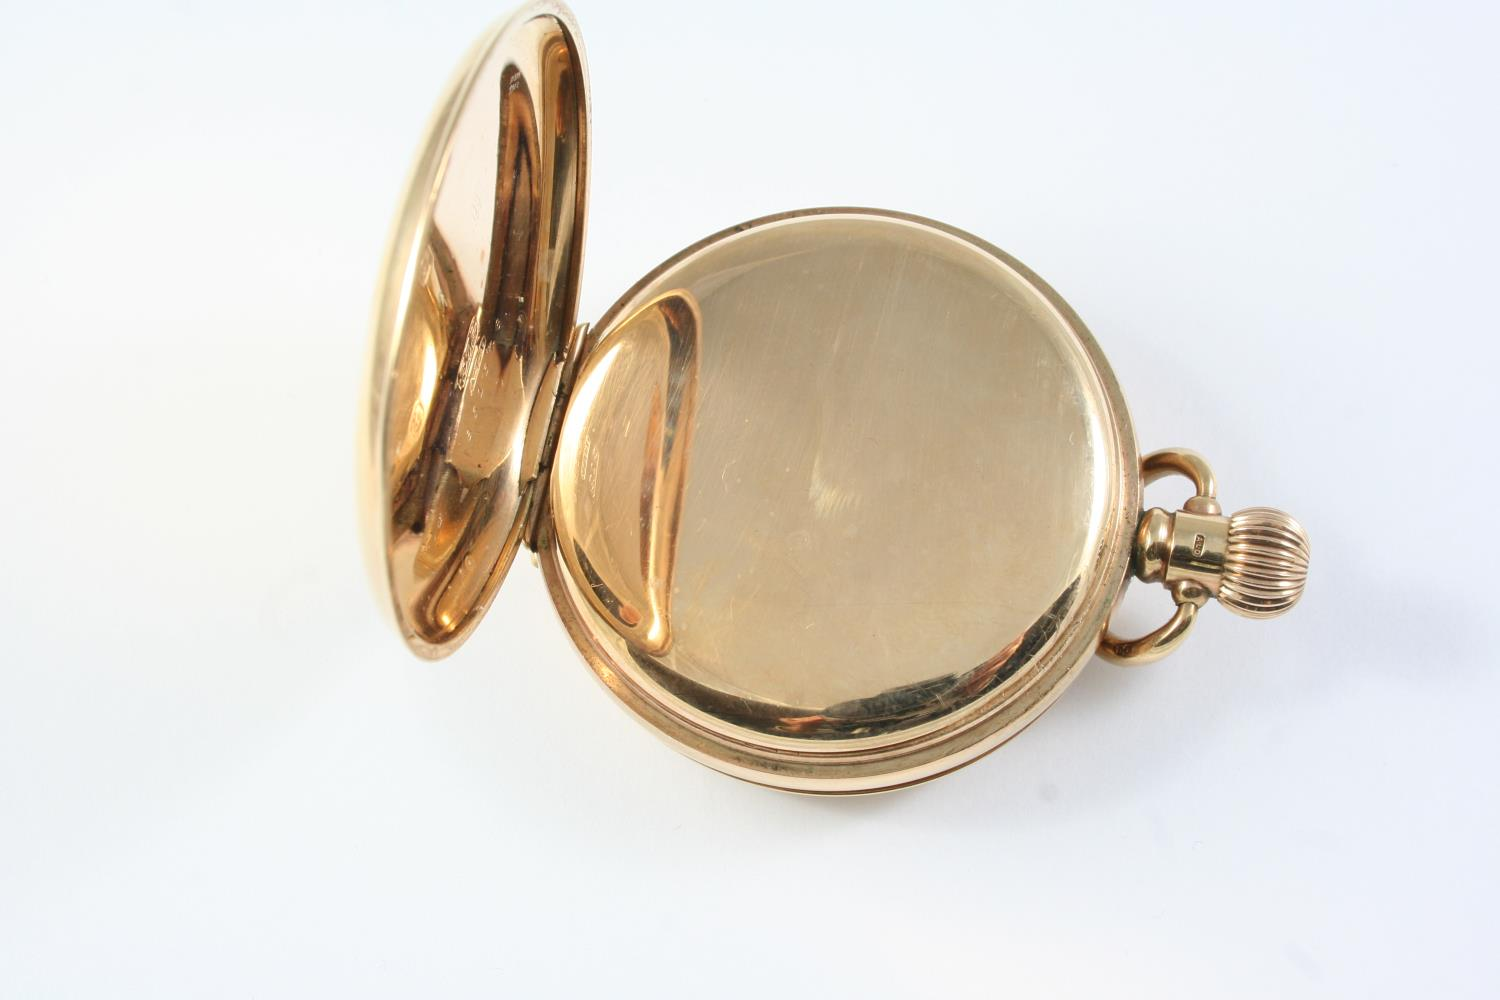 A 9CT GOLD HALF HUNTING CASED POCKET WATCH the white enamel dial with Roman numerals and - Image 3 of 5